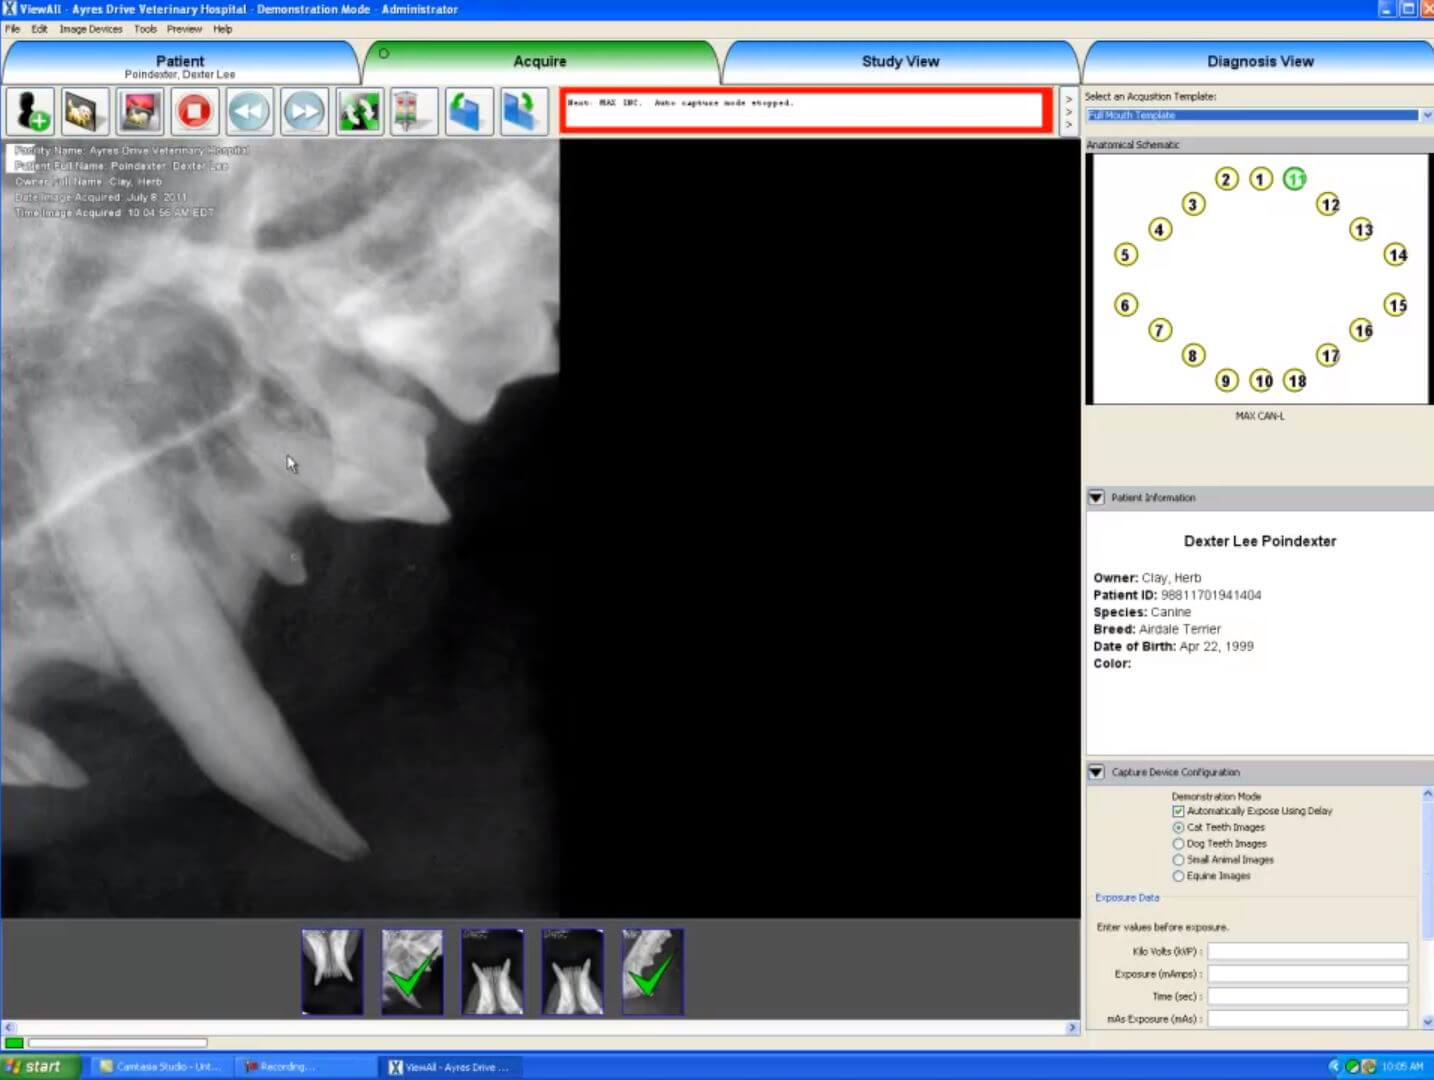 Dicom Software Acquire Screen Example with x-rays